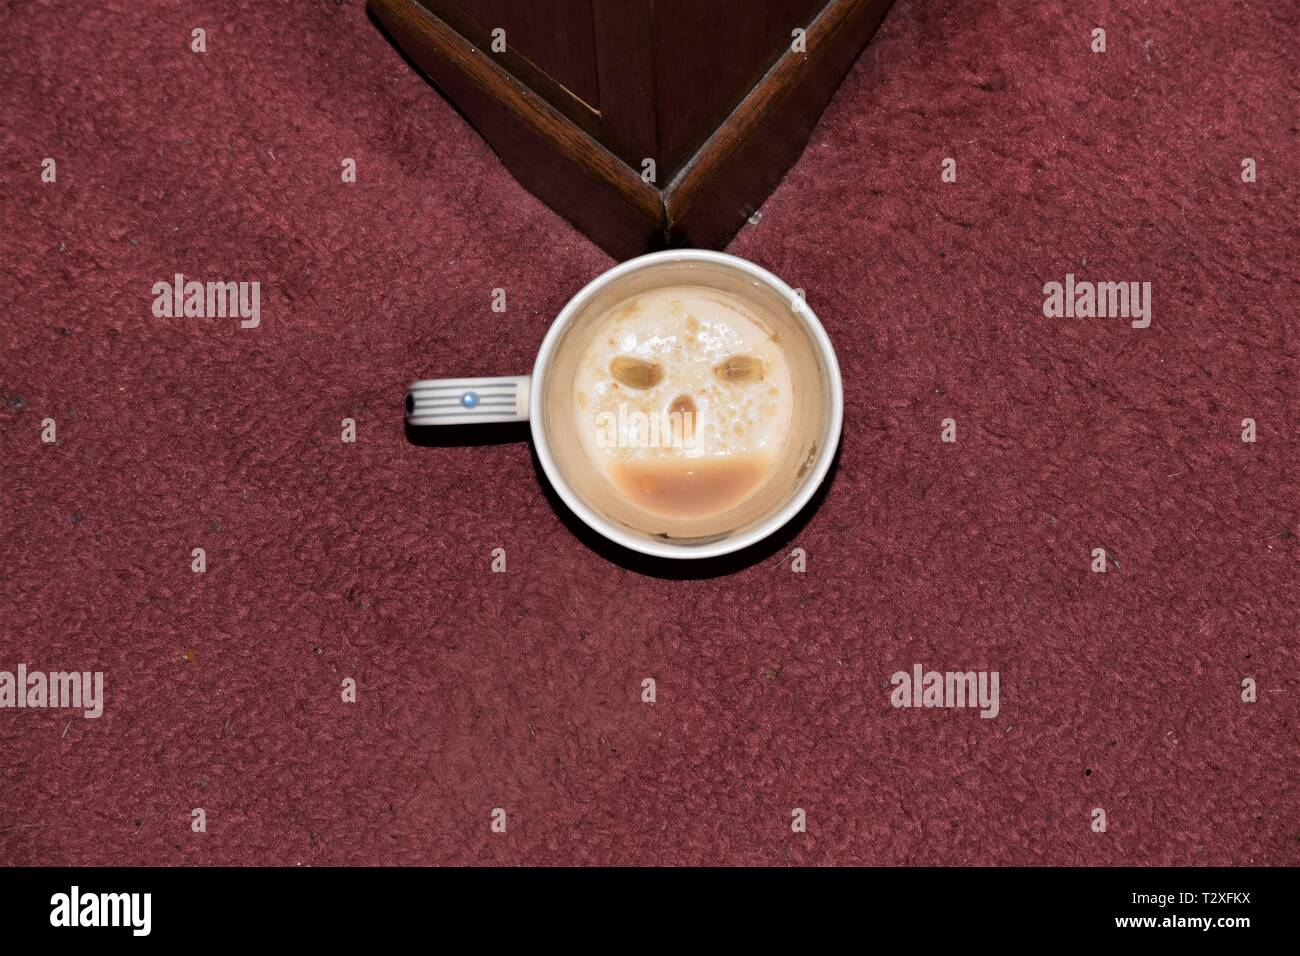 A white cup with a smiley face designed with lemon pip eyes and coffee dregs mouth. A fun creation to amuse children and folk in a festive mood. Stock Photo